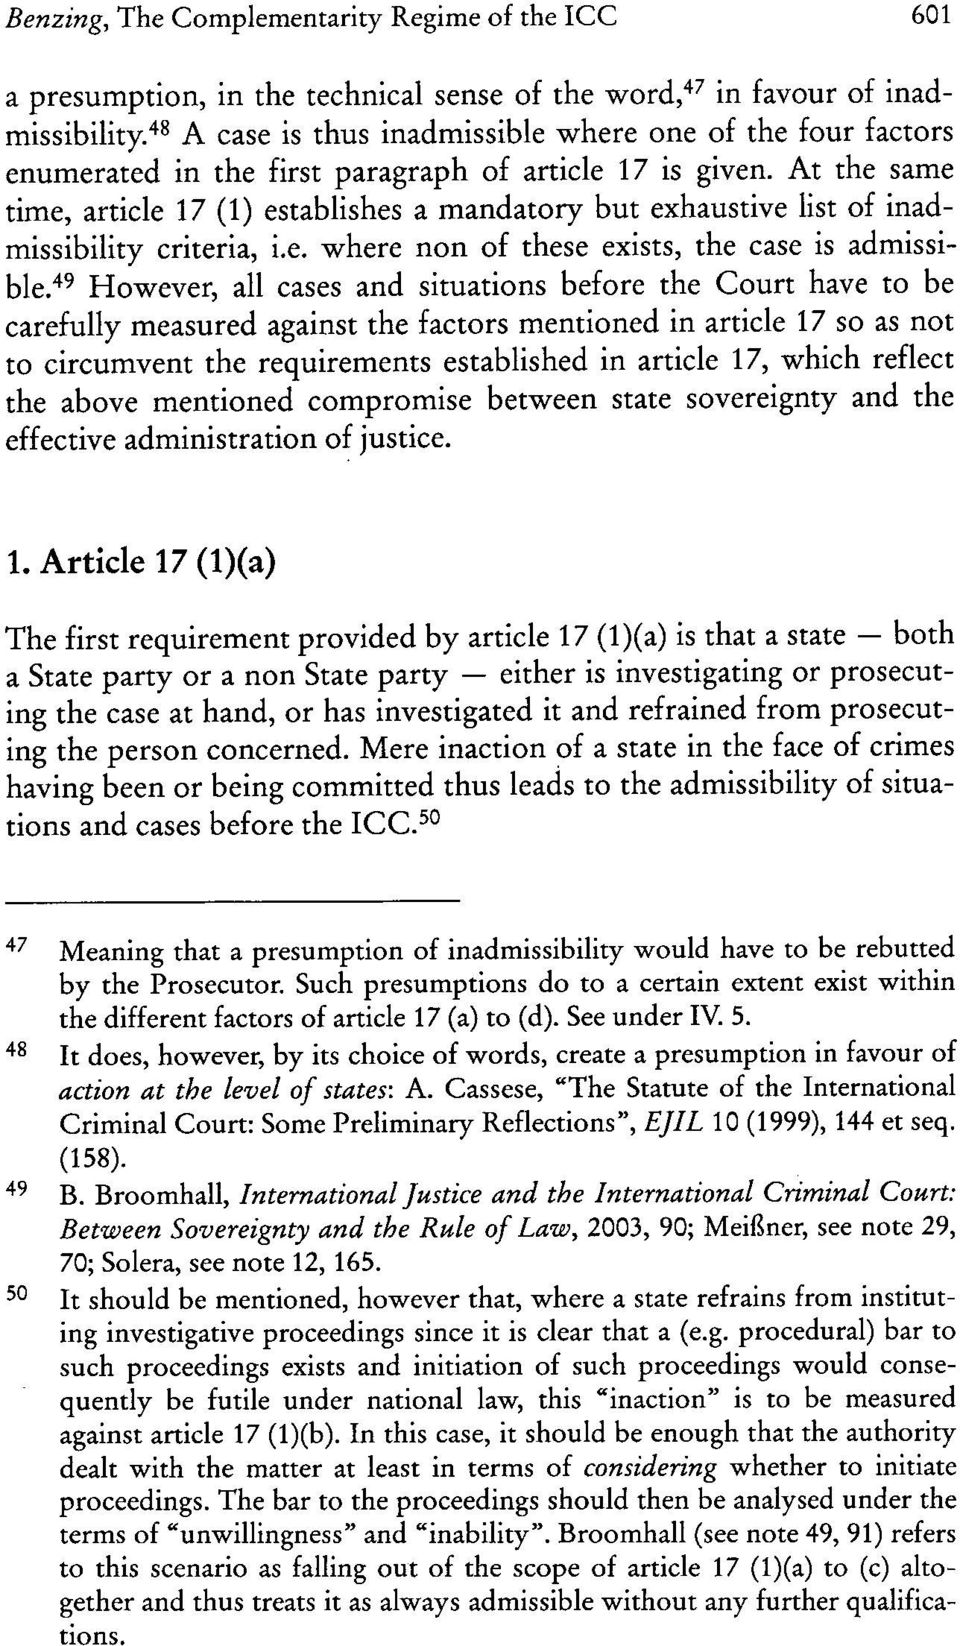 "At the same time, article 17 (1) establishes a mandatory but exhaustive list of inadmissibility criteria, i.e. where non of these exists, the case is admissible,""?"